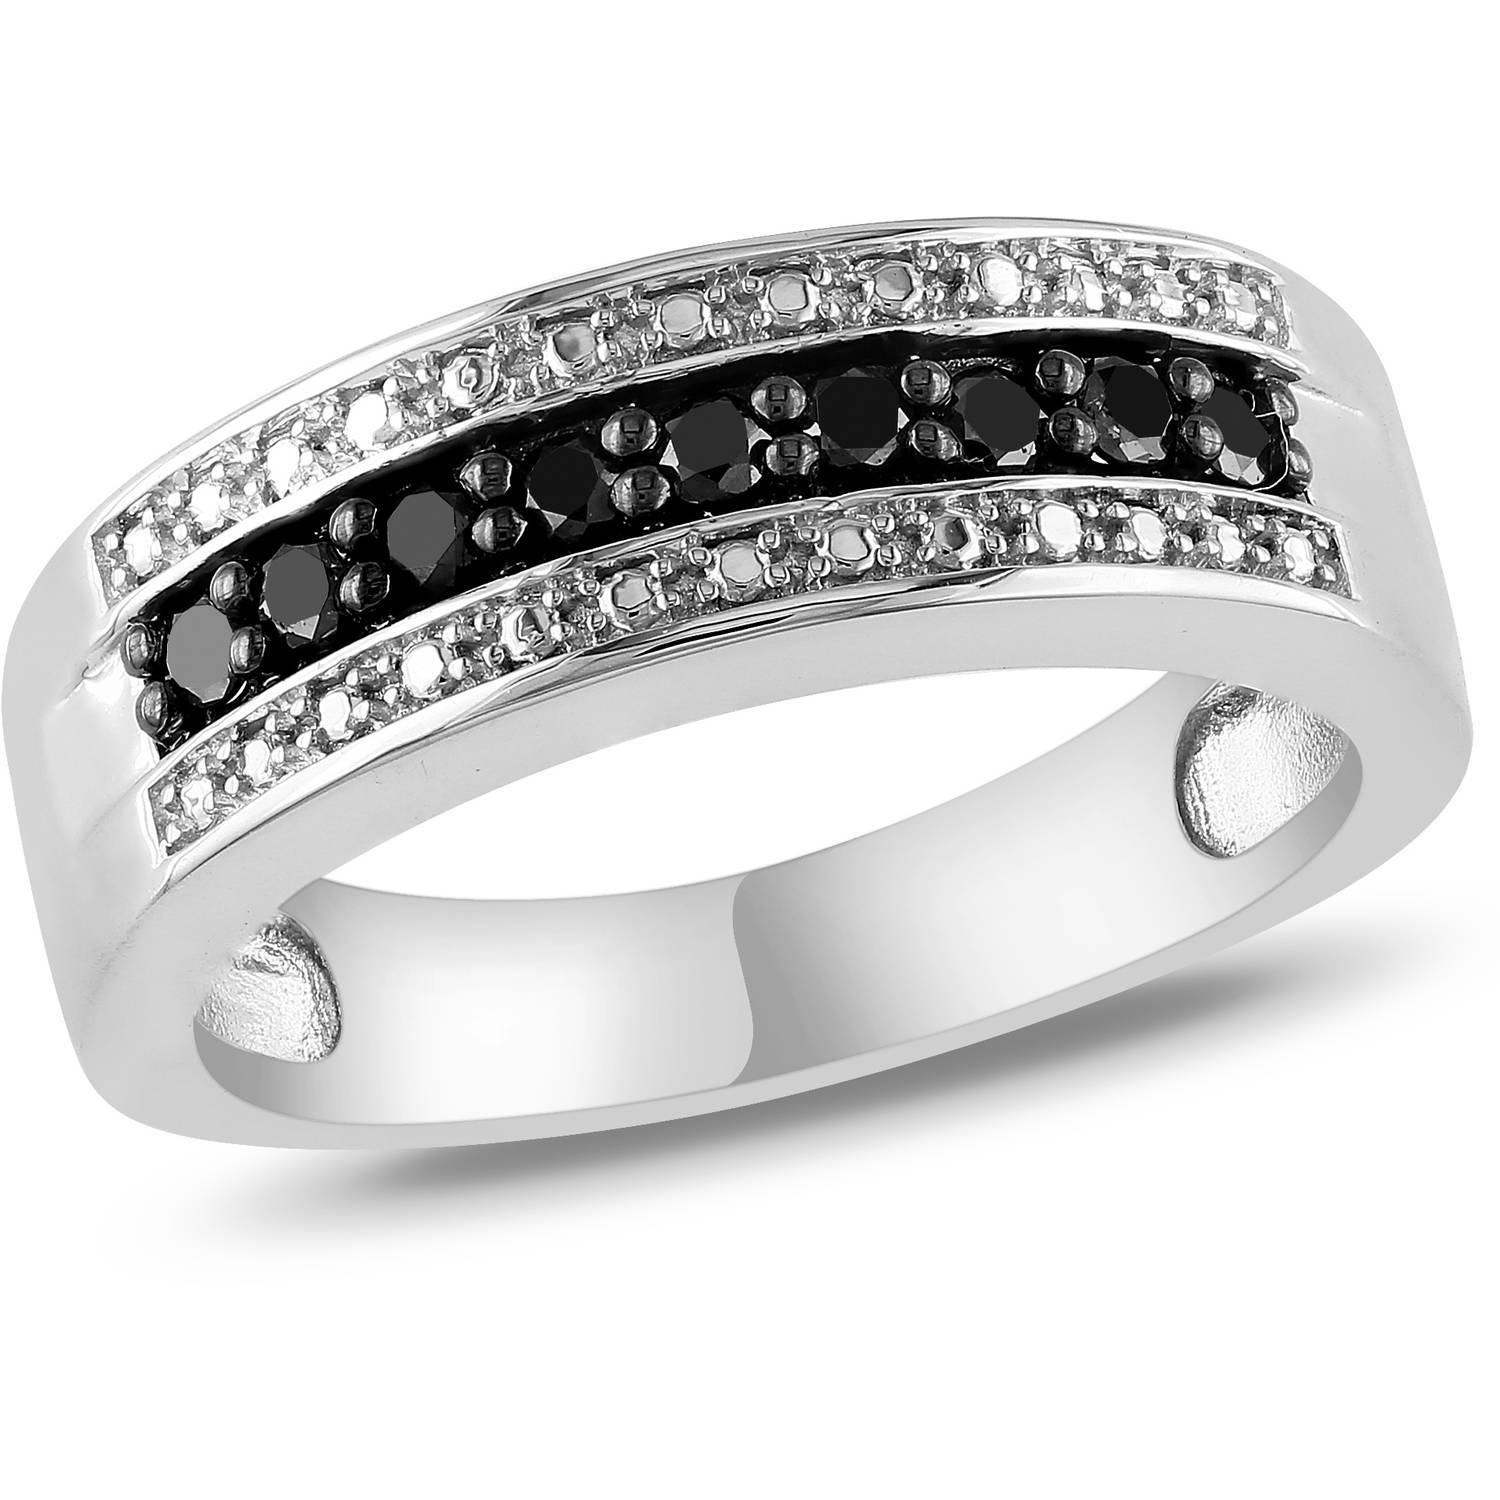 15 Ideas of Walmart Jewelry Mens Wedding Bands